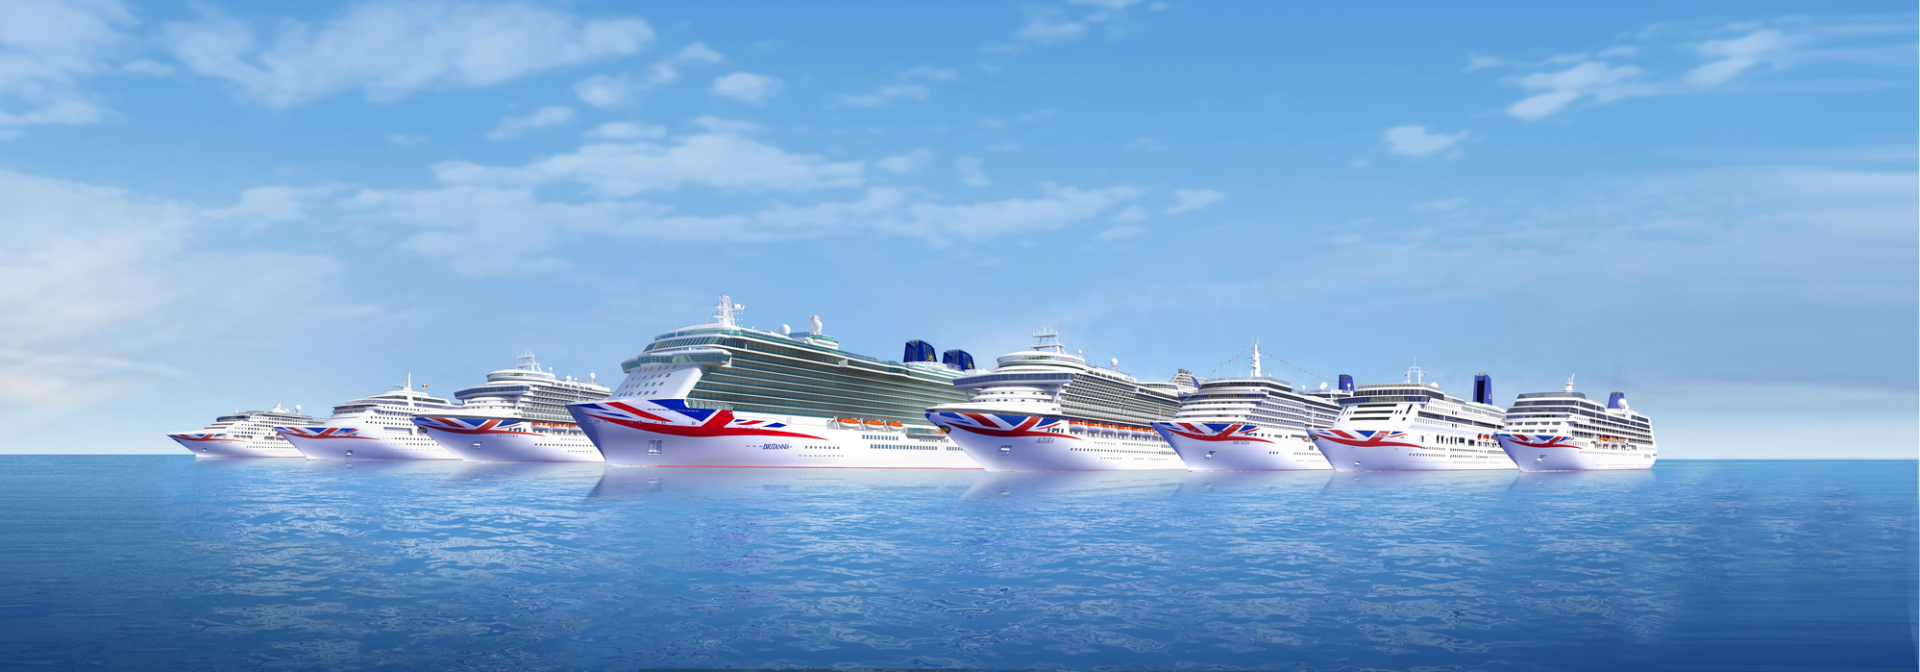 P&O Cruises Announces Huge New Ship, Coming 2022!